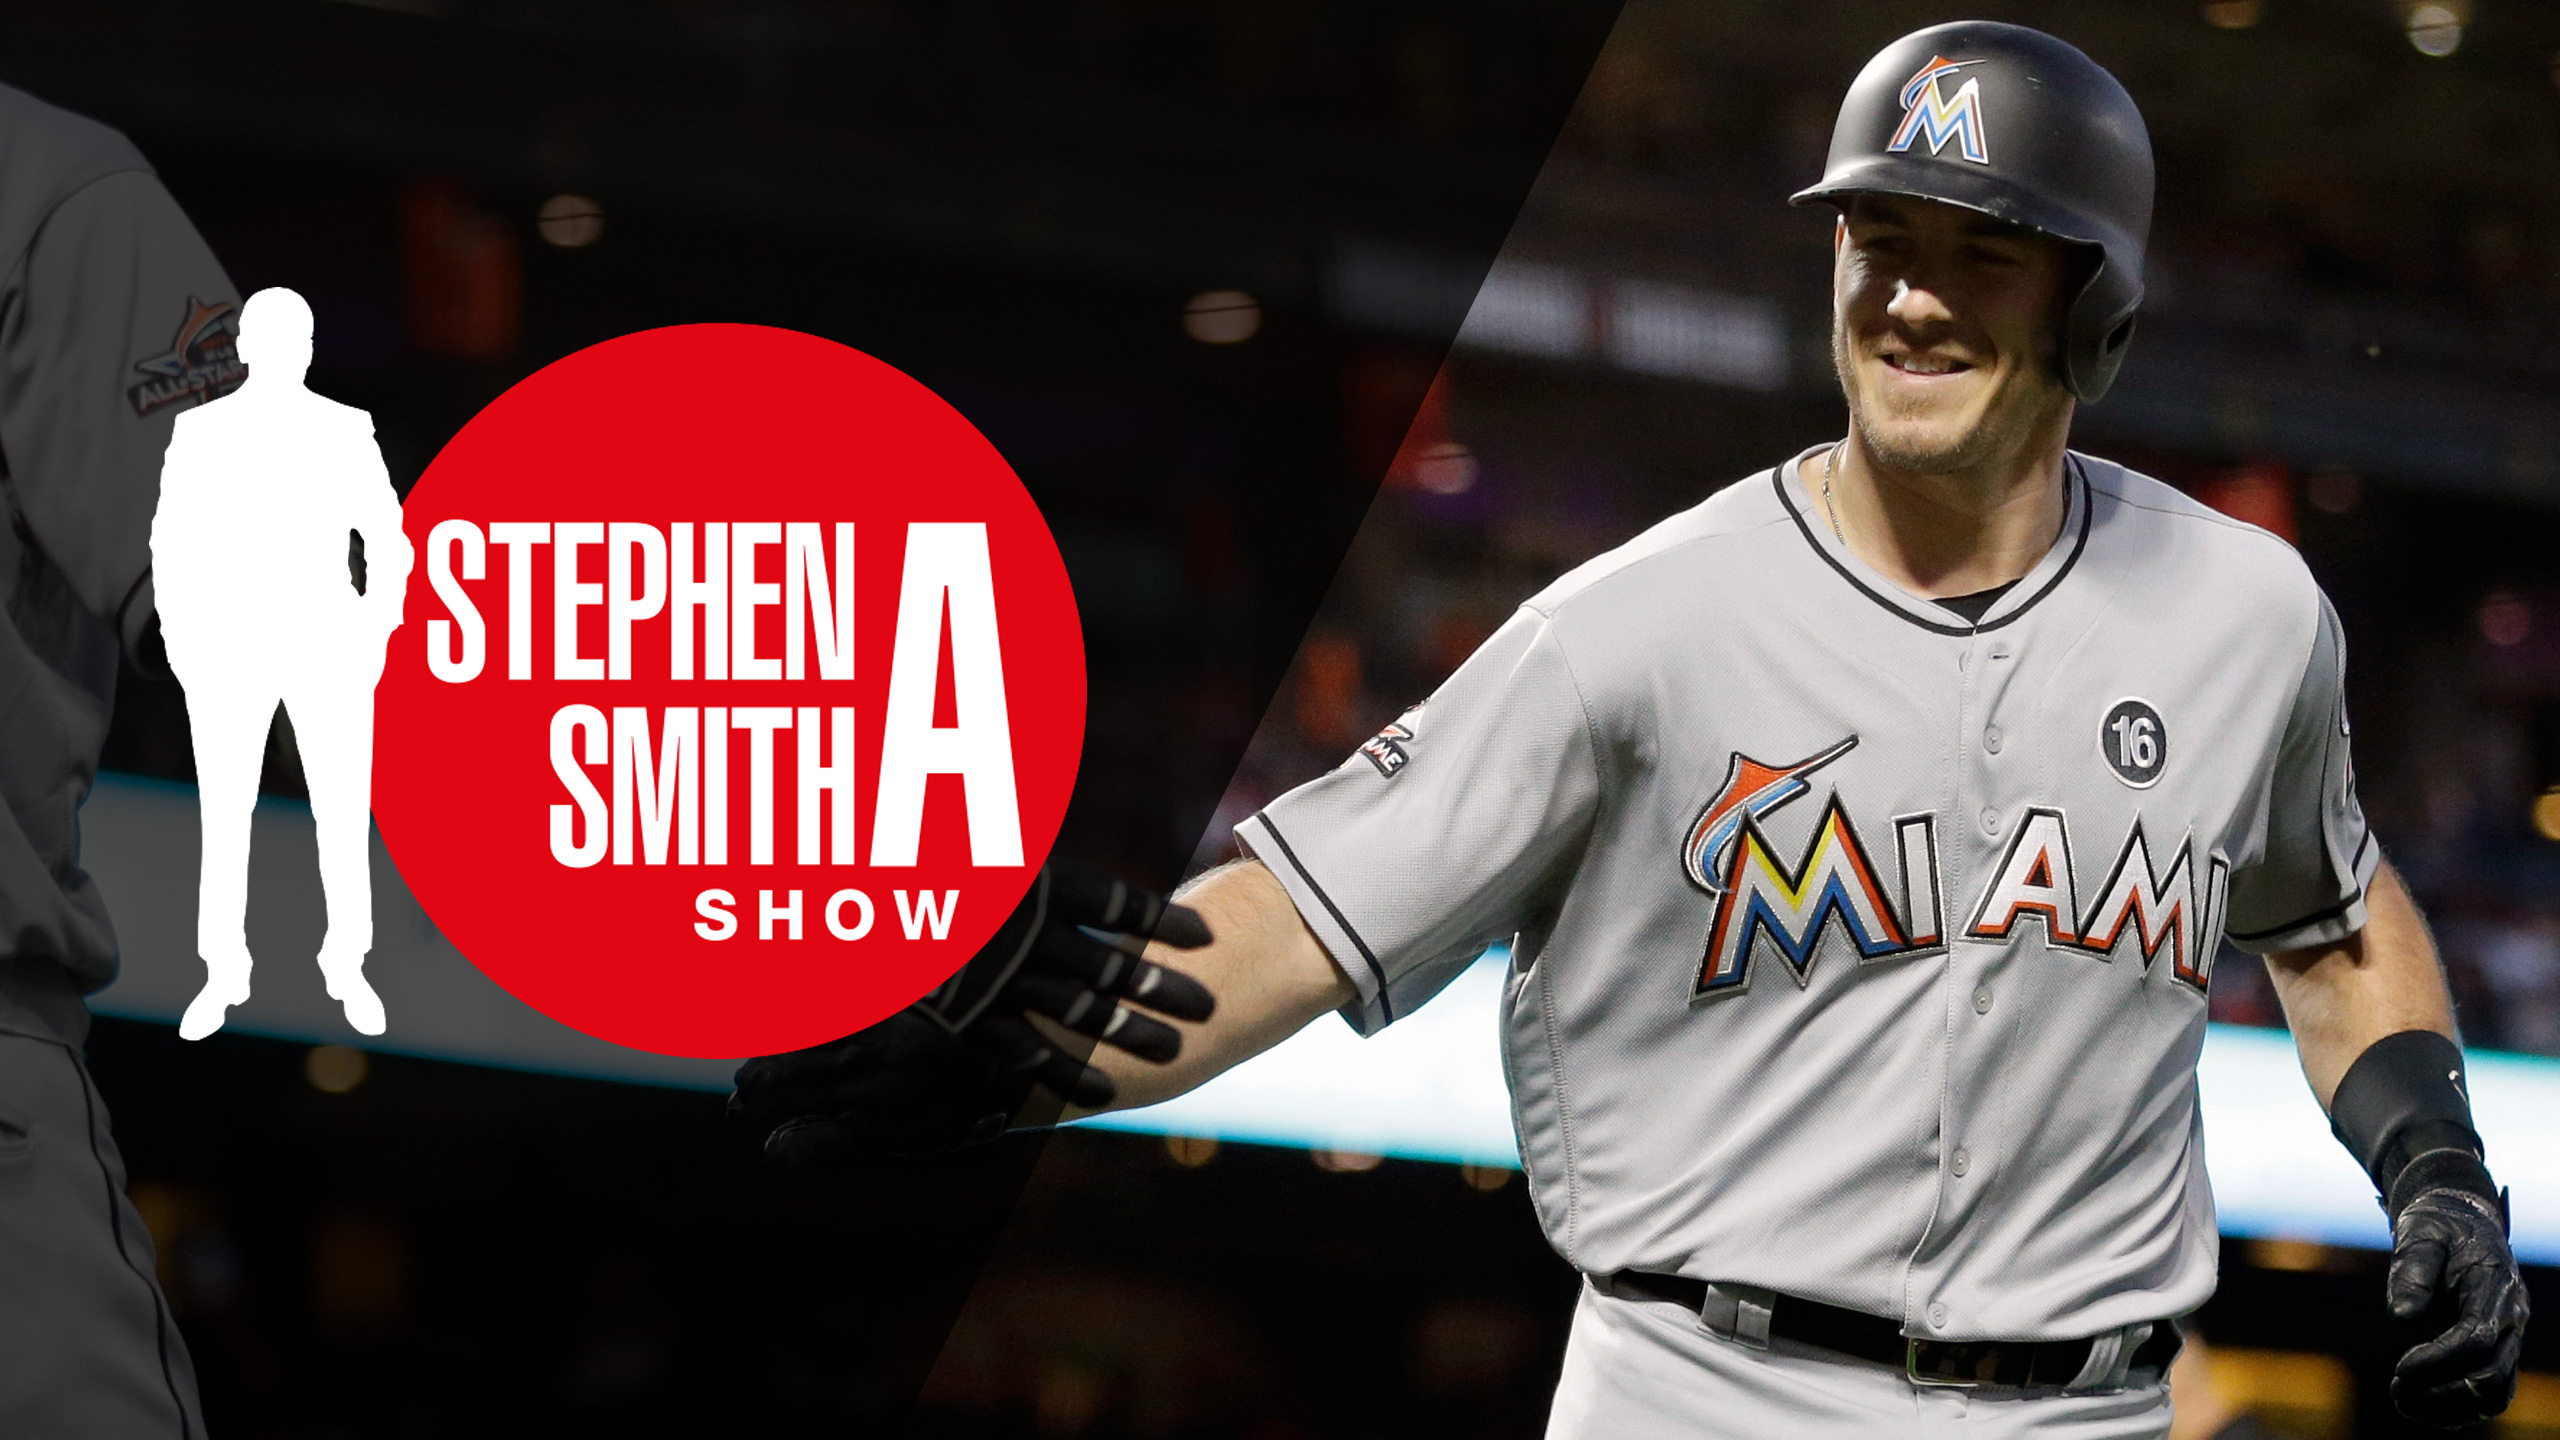 Wed, 12/12 - The Stephen A. Smith Show